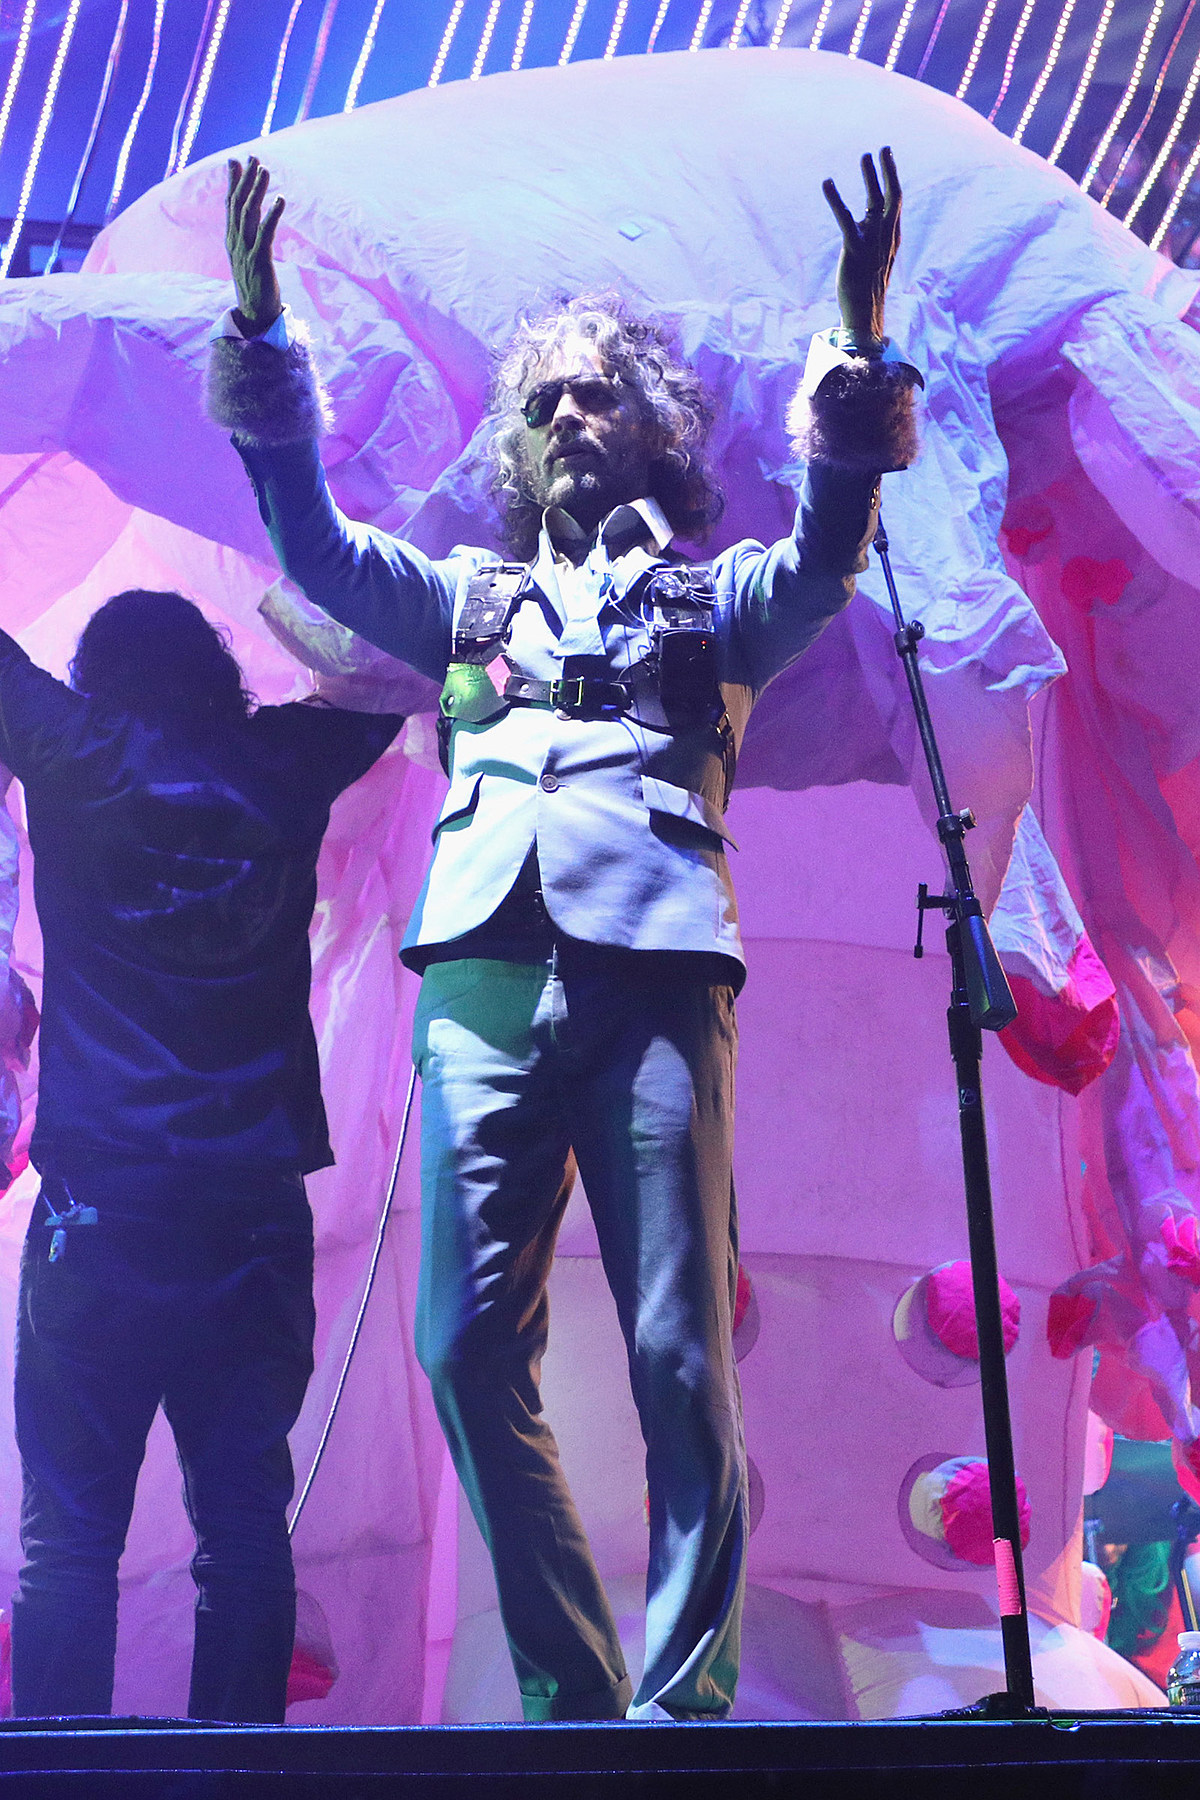 The Flaming Lips touring with The Claypool Lennon Delirium this summer